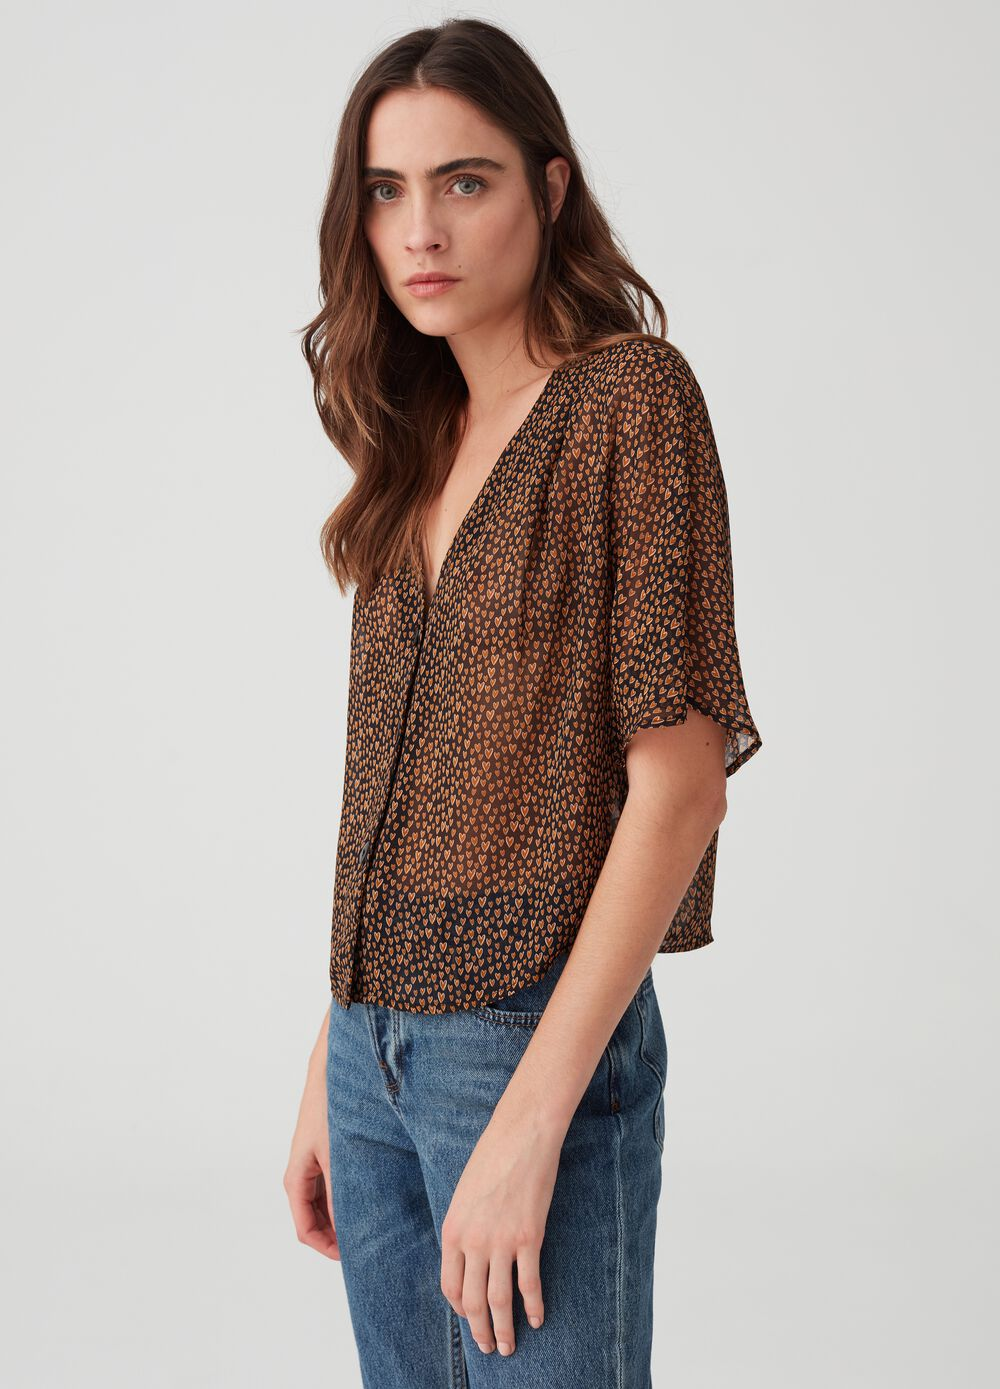 V-neck blouse with hearts print